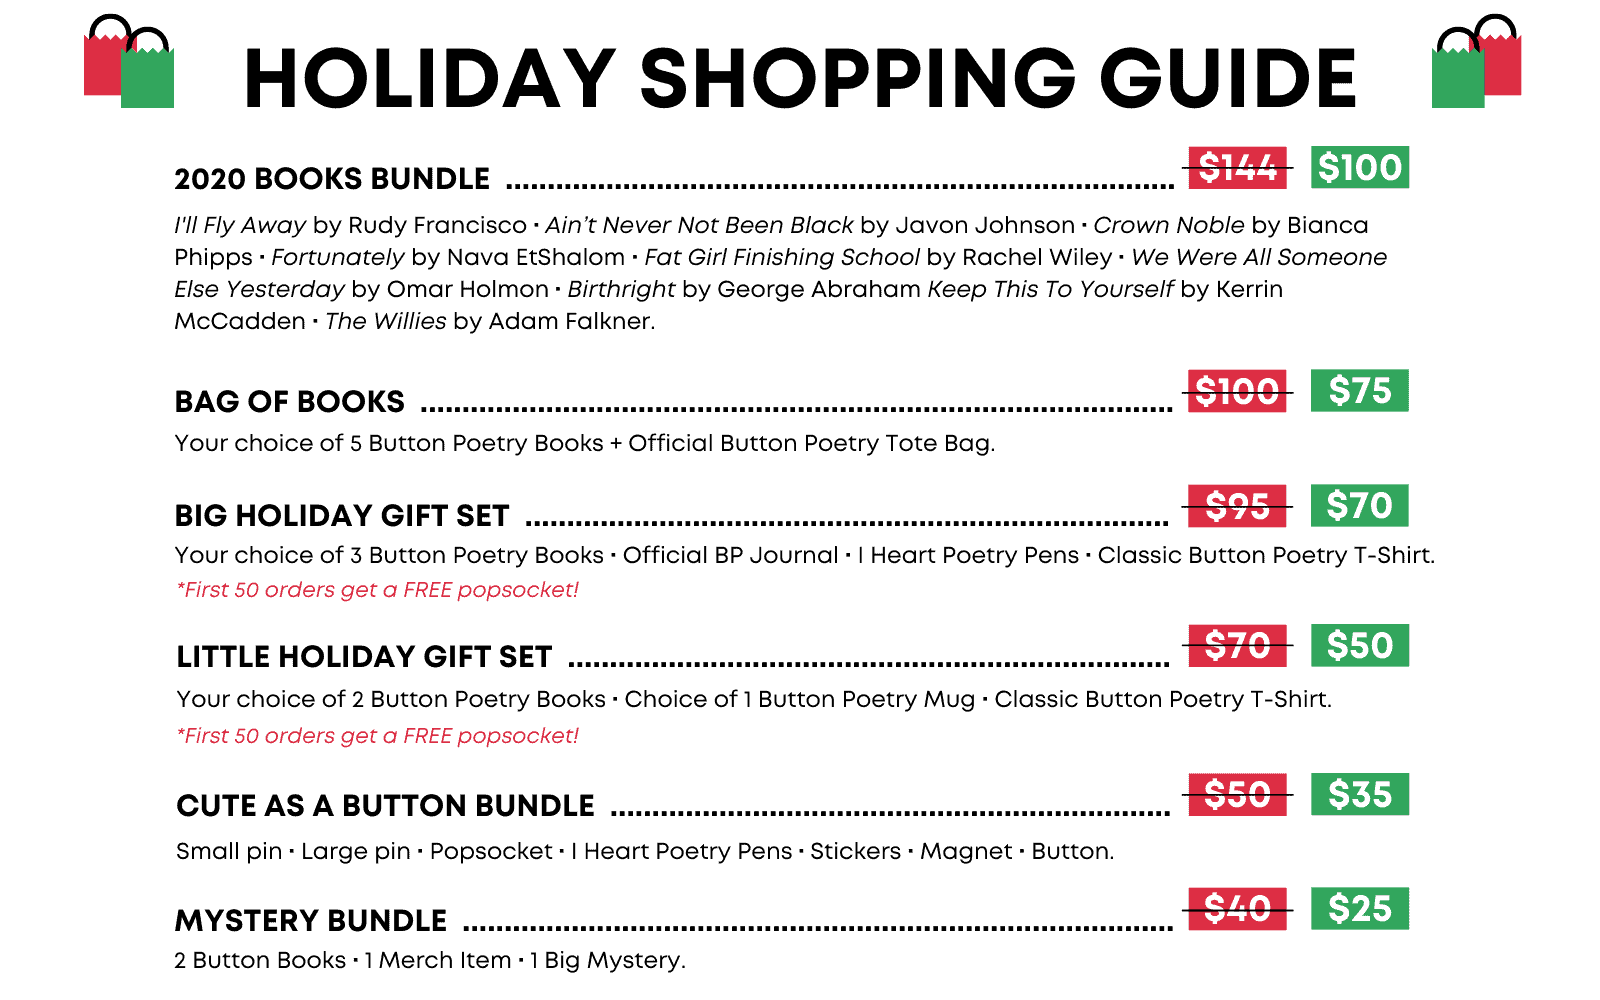 2020 Holiday Shopping Guide